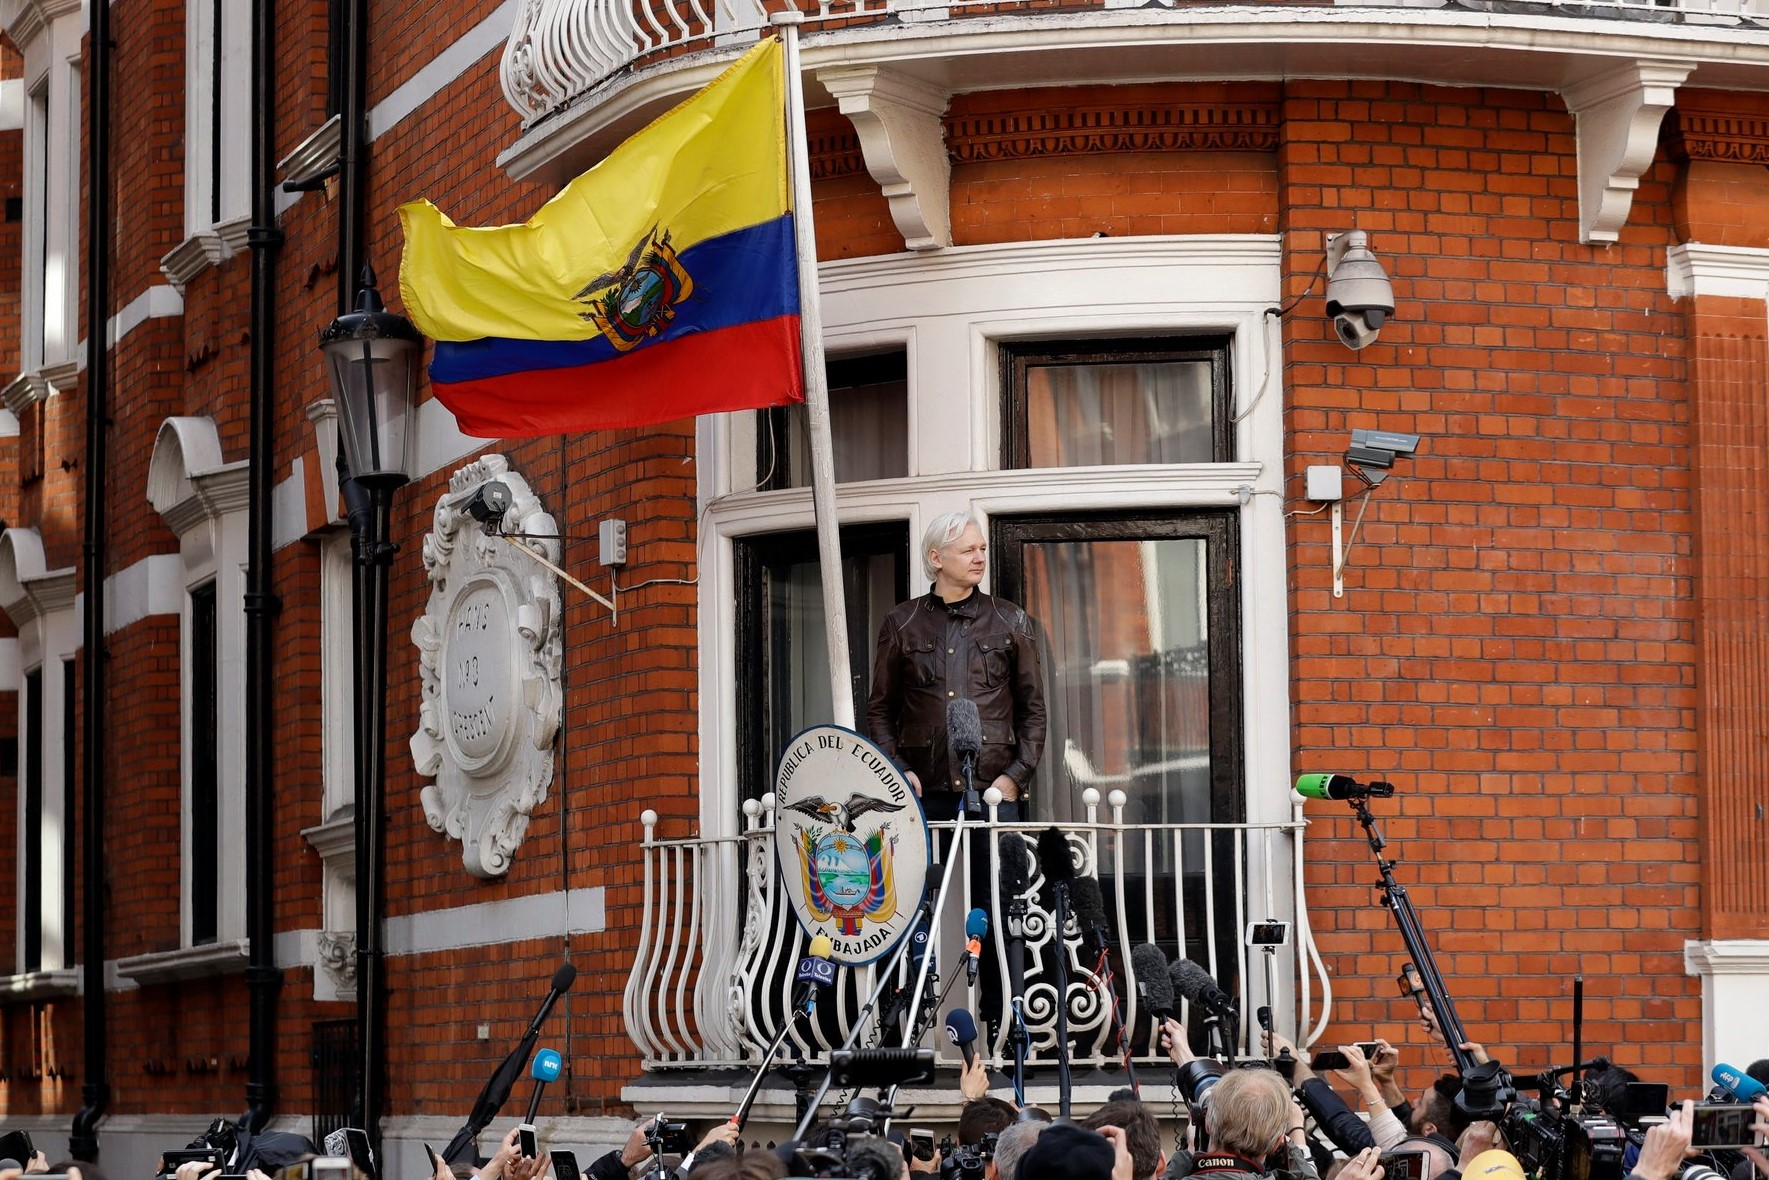 Jullian Assange's extradtion